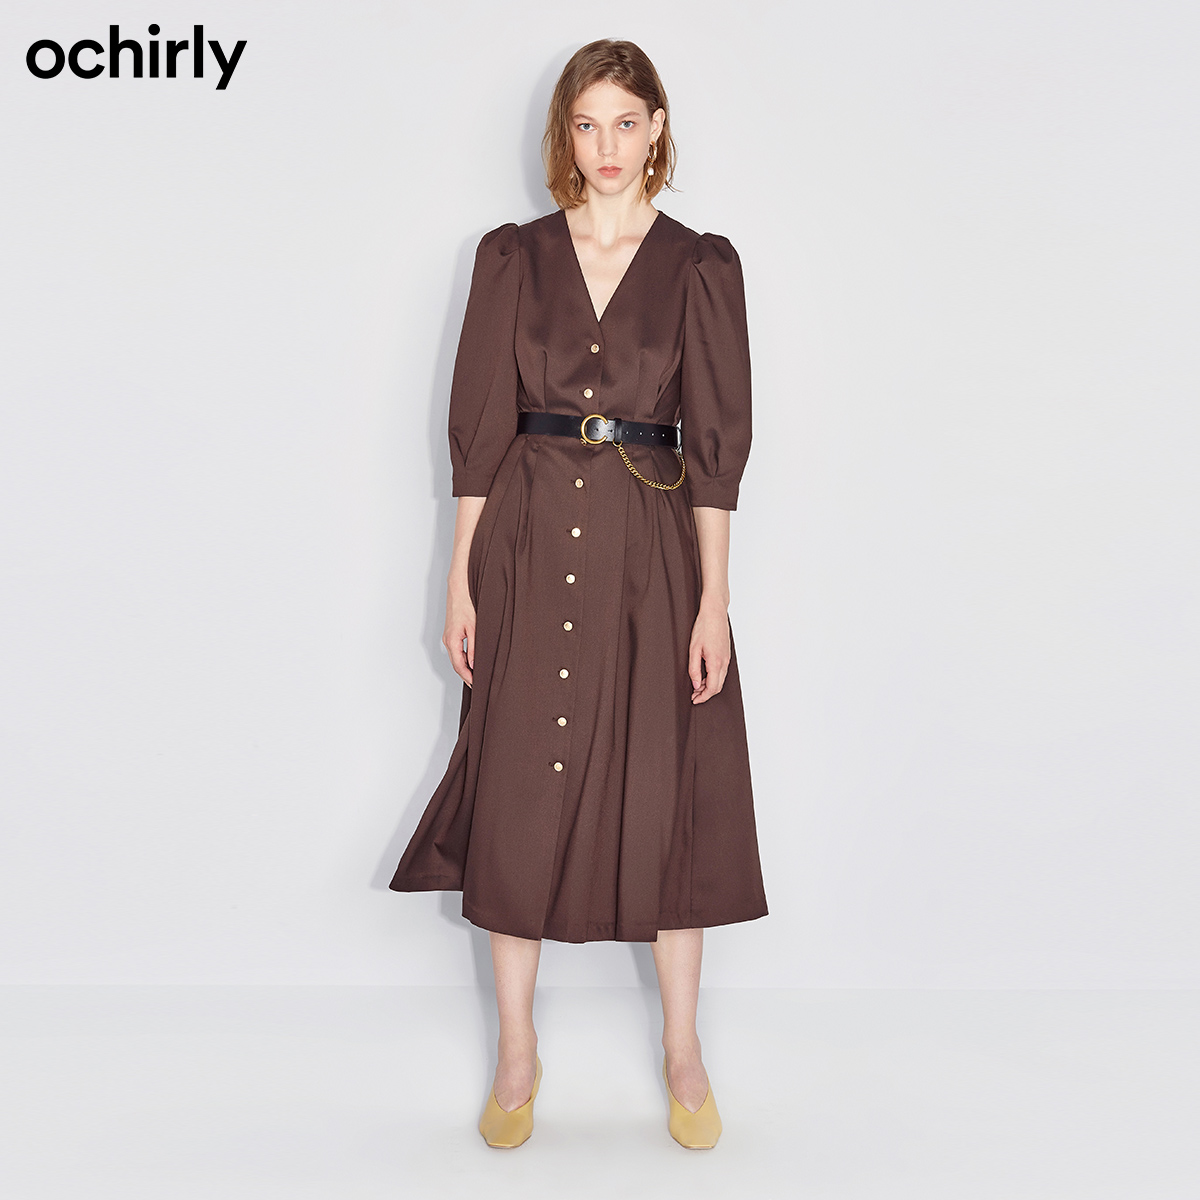 Ochirly 2020 new winter wear, breasted waist and thin French dress female 1RY4082780